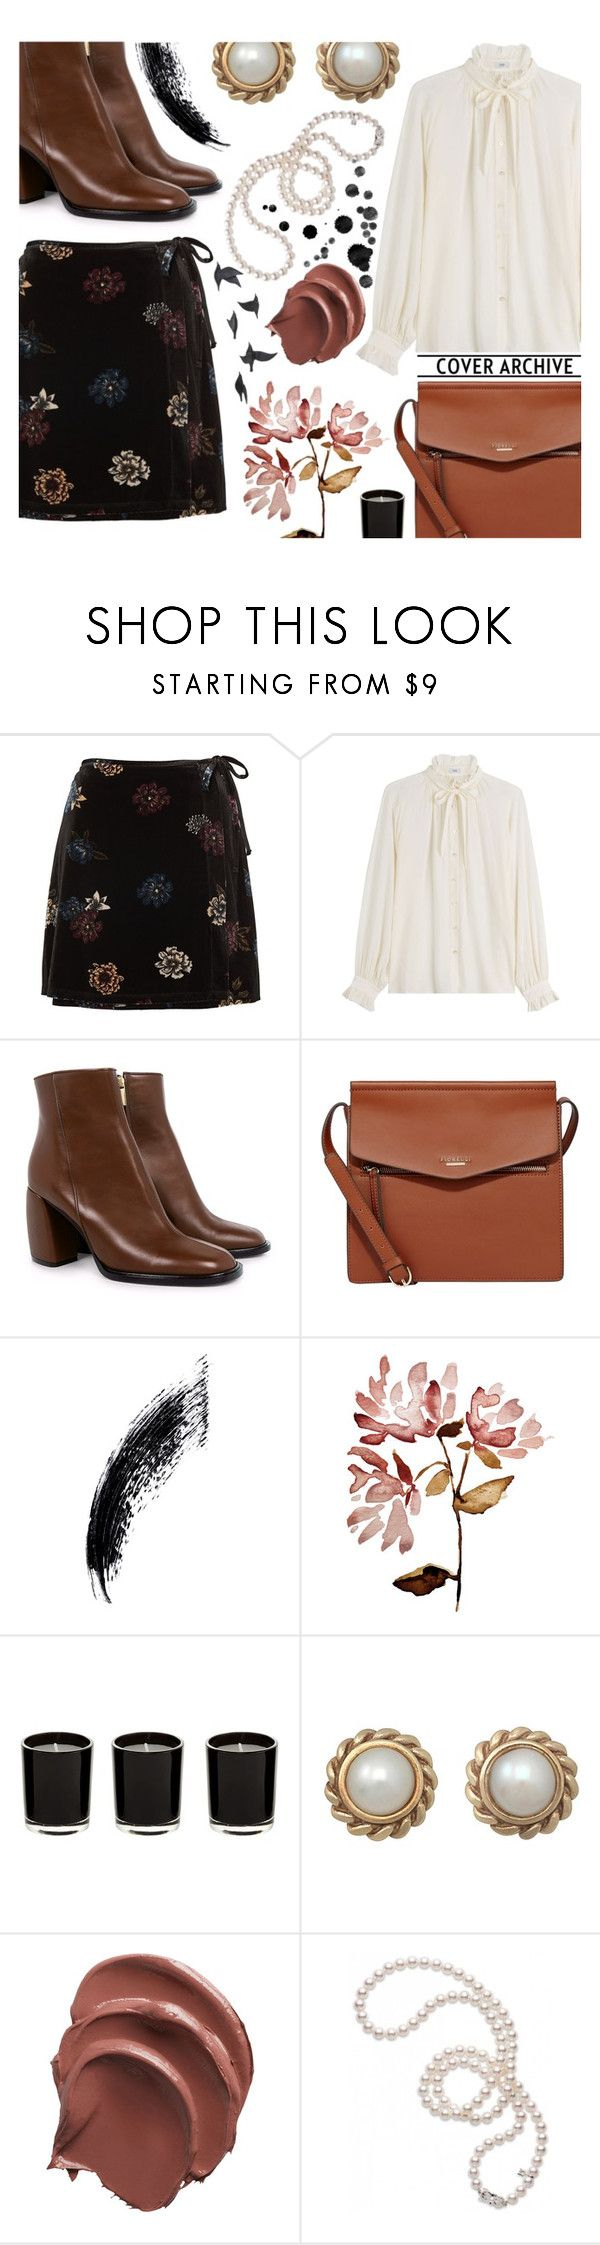 """Dear Isabelle"" by abdalla-aguiar-1 ❤ liked on Polyvore featuring Closed, TIBI, Fiorelli, Mikimoto and Jayson Home"